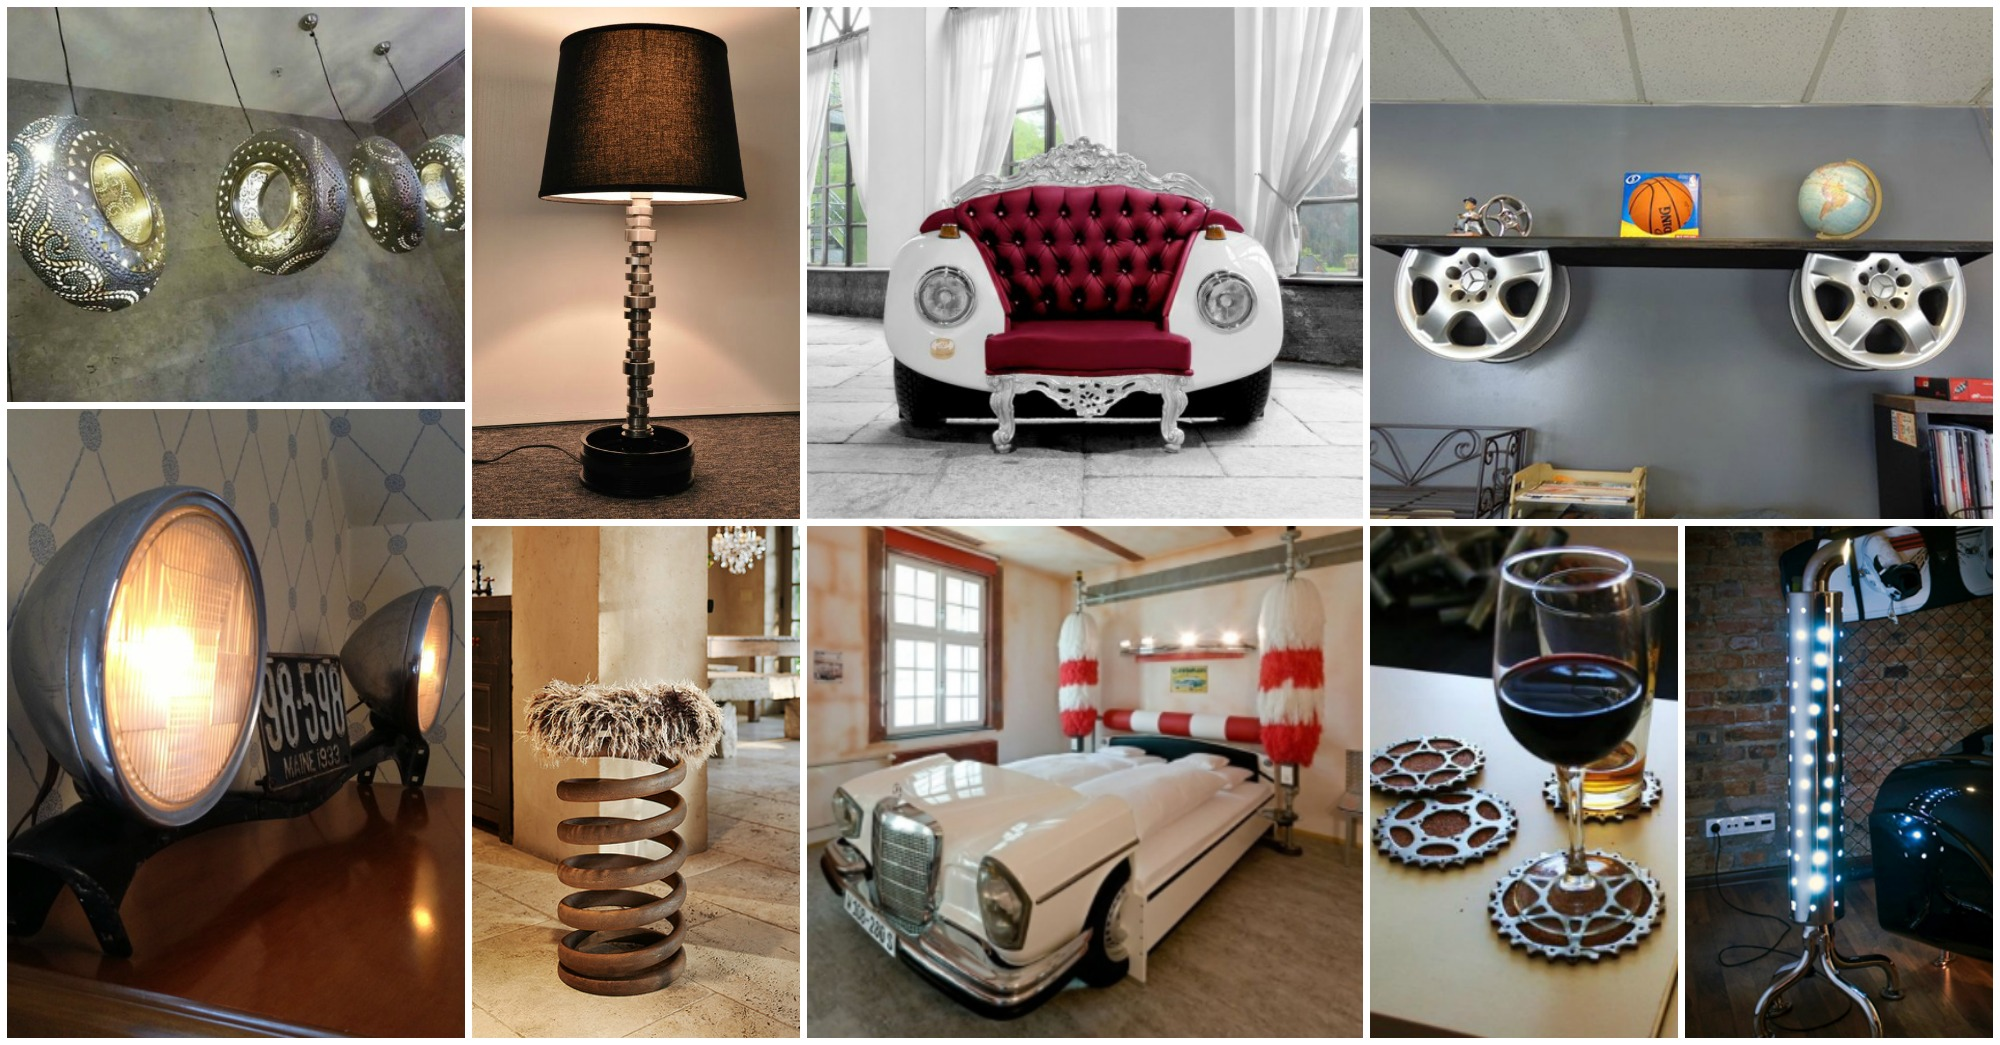 15 Fascinating Recycled Car Parts Ideas